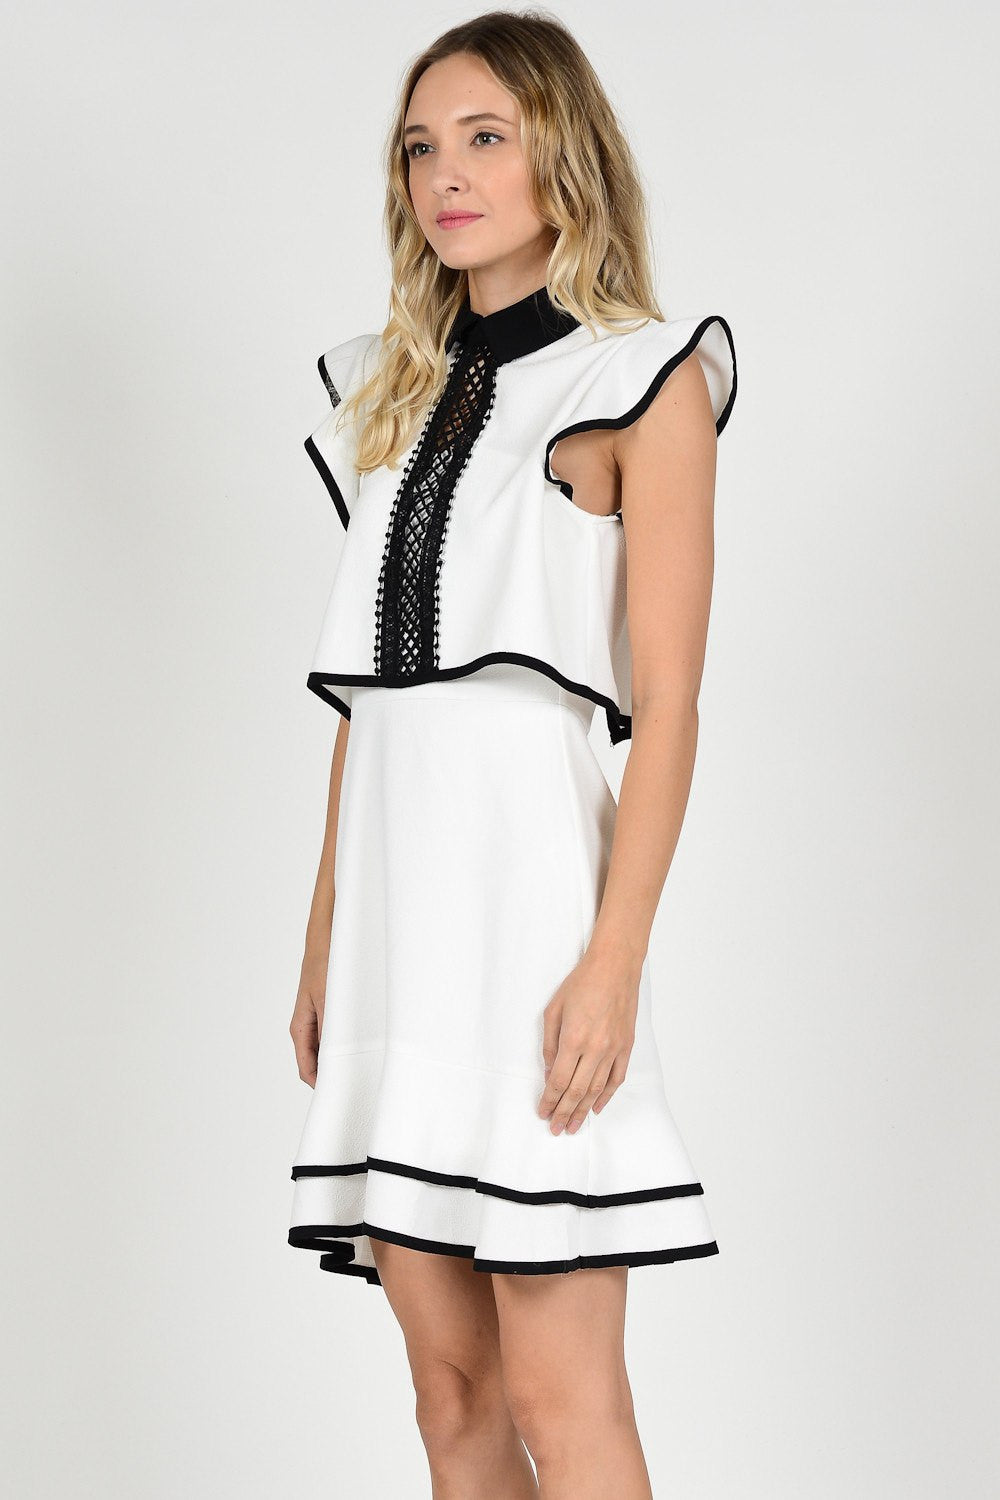 Alina Dress from The Closet Laboratory. Fashion and Apparel. Black and White.